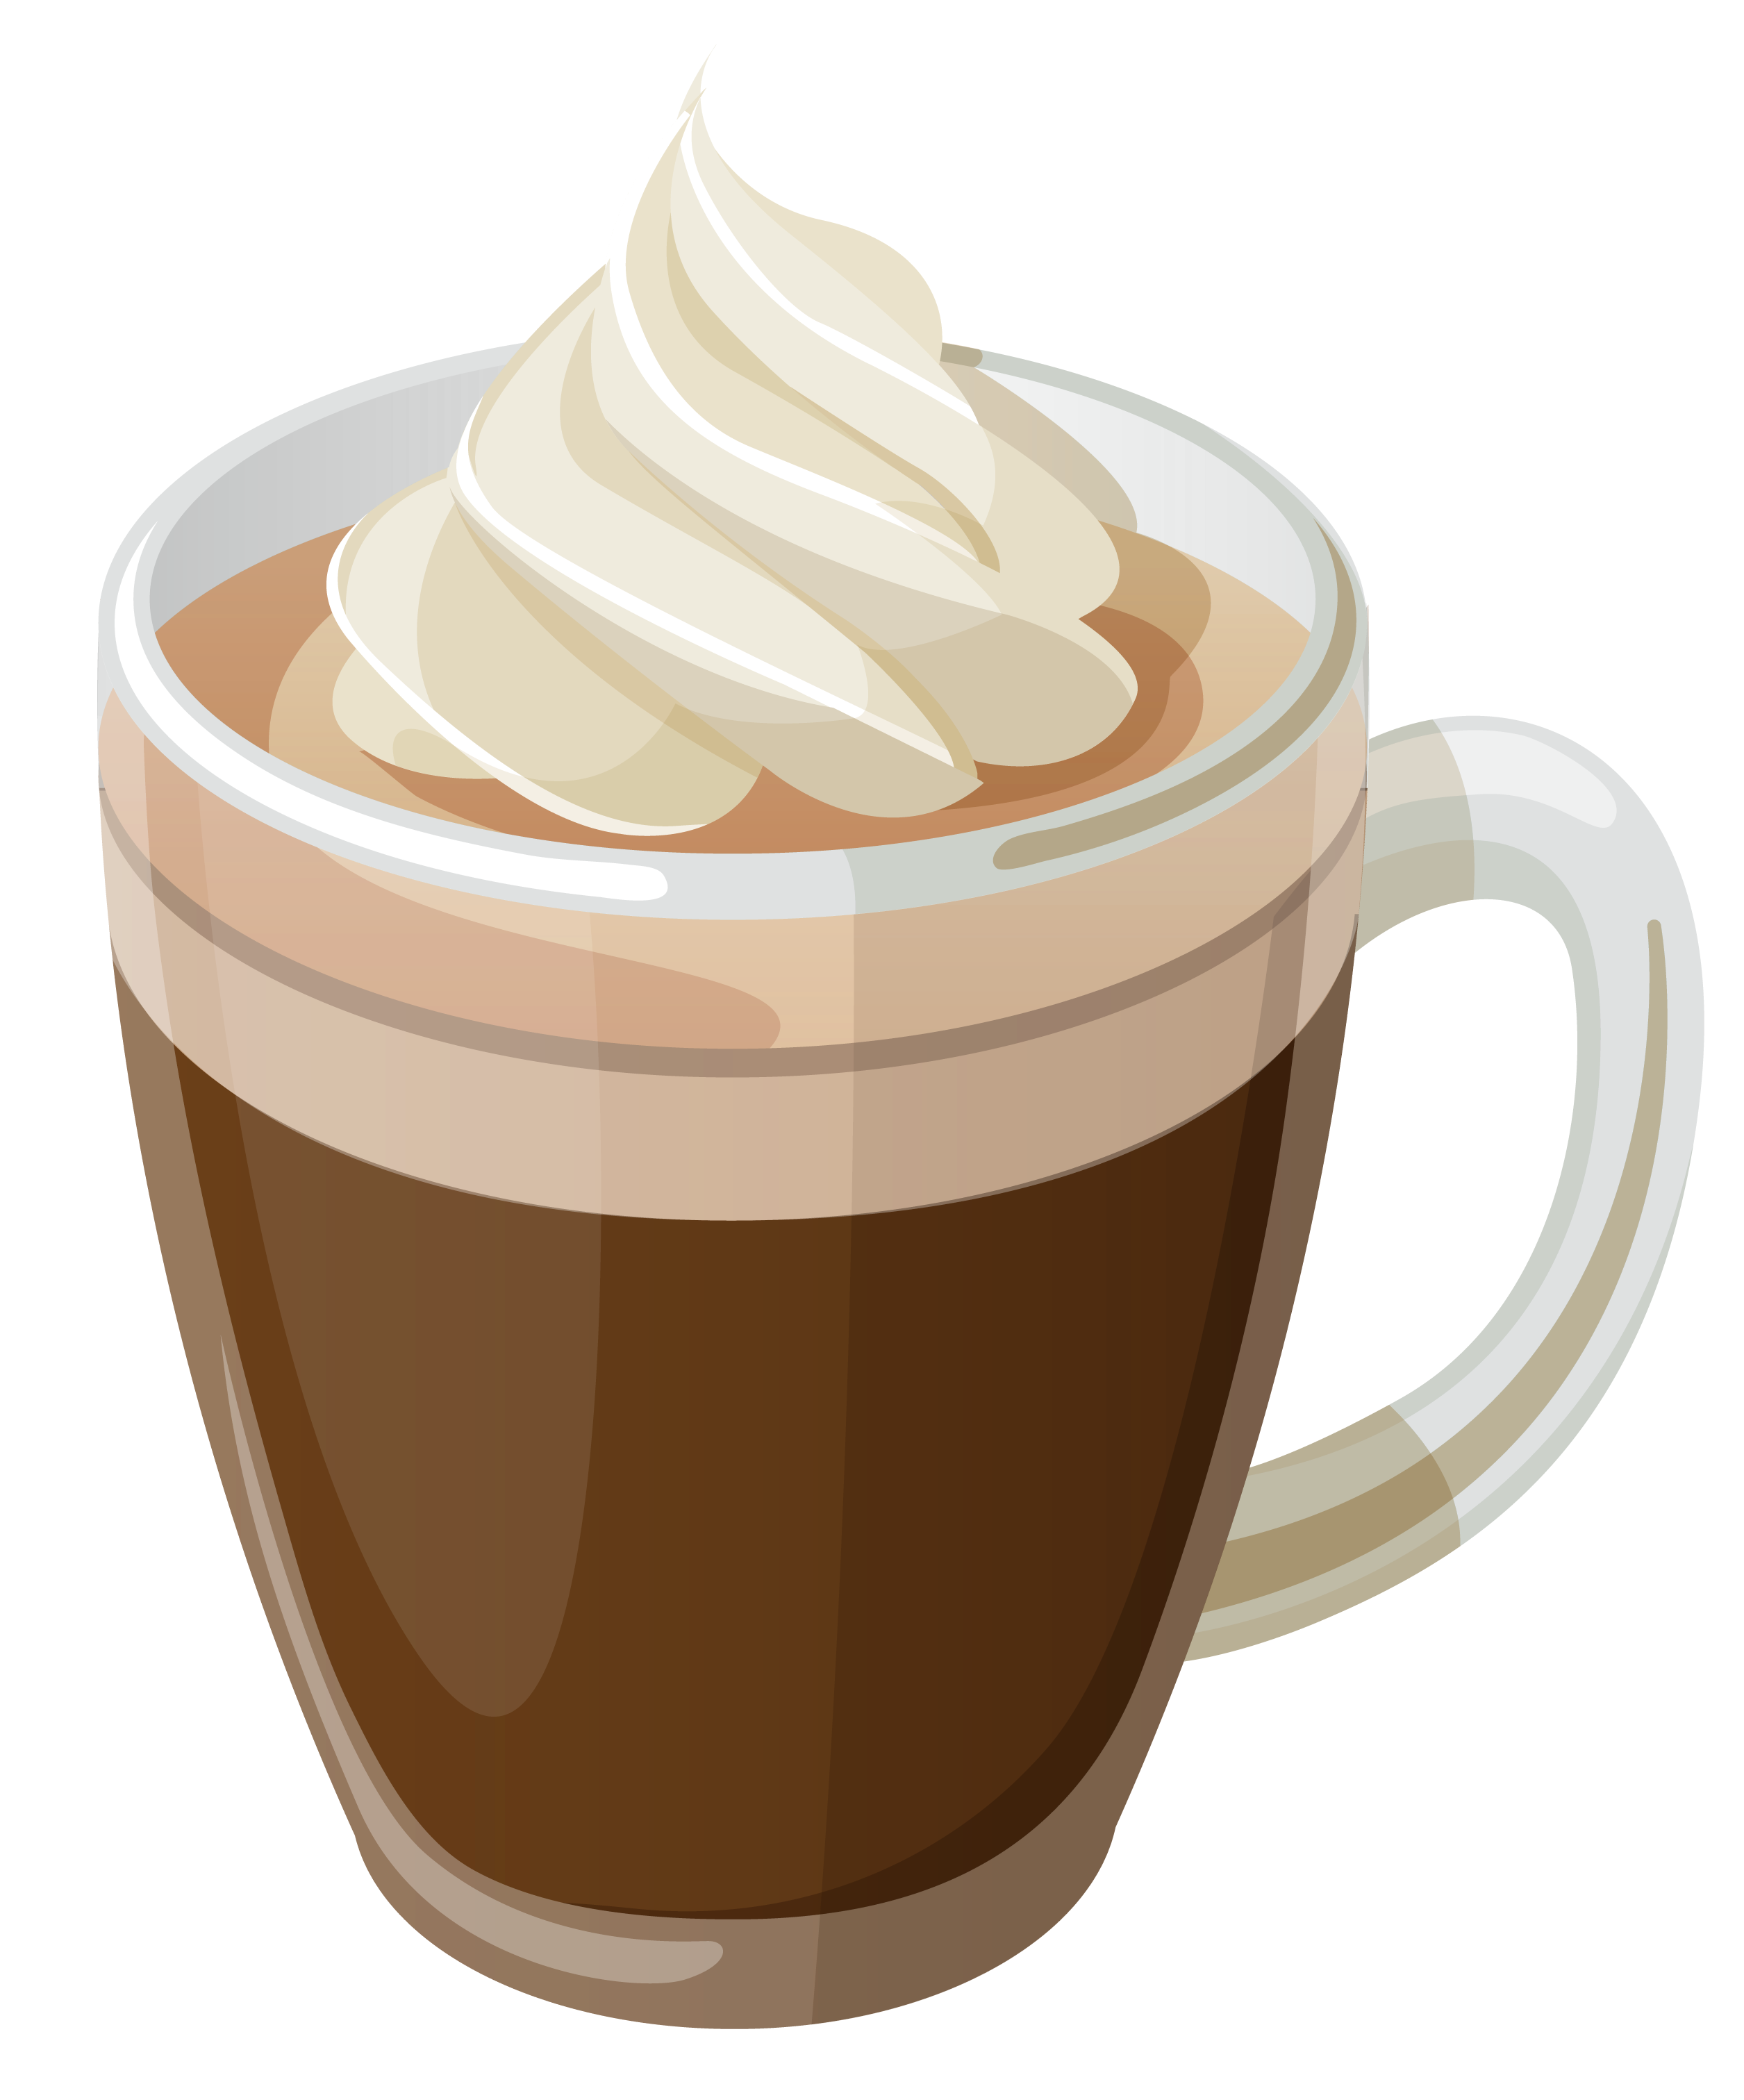 Baby-Moana-Creamy Biscuit. Coffee with cream png